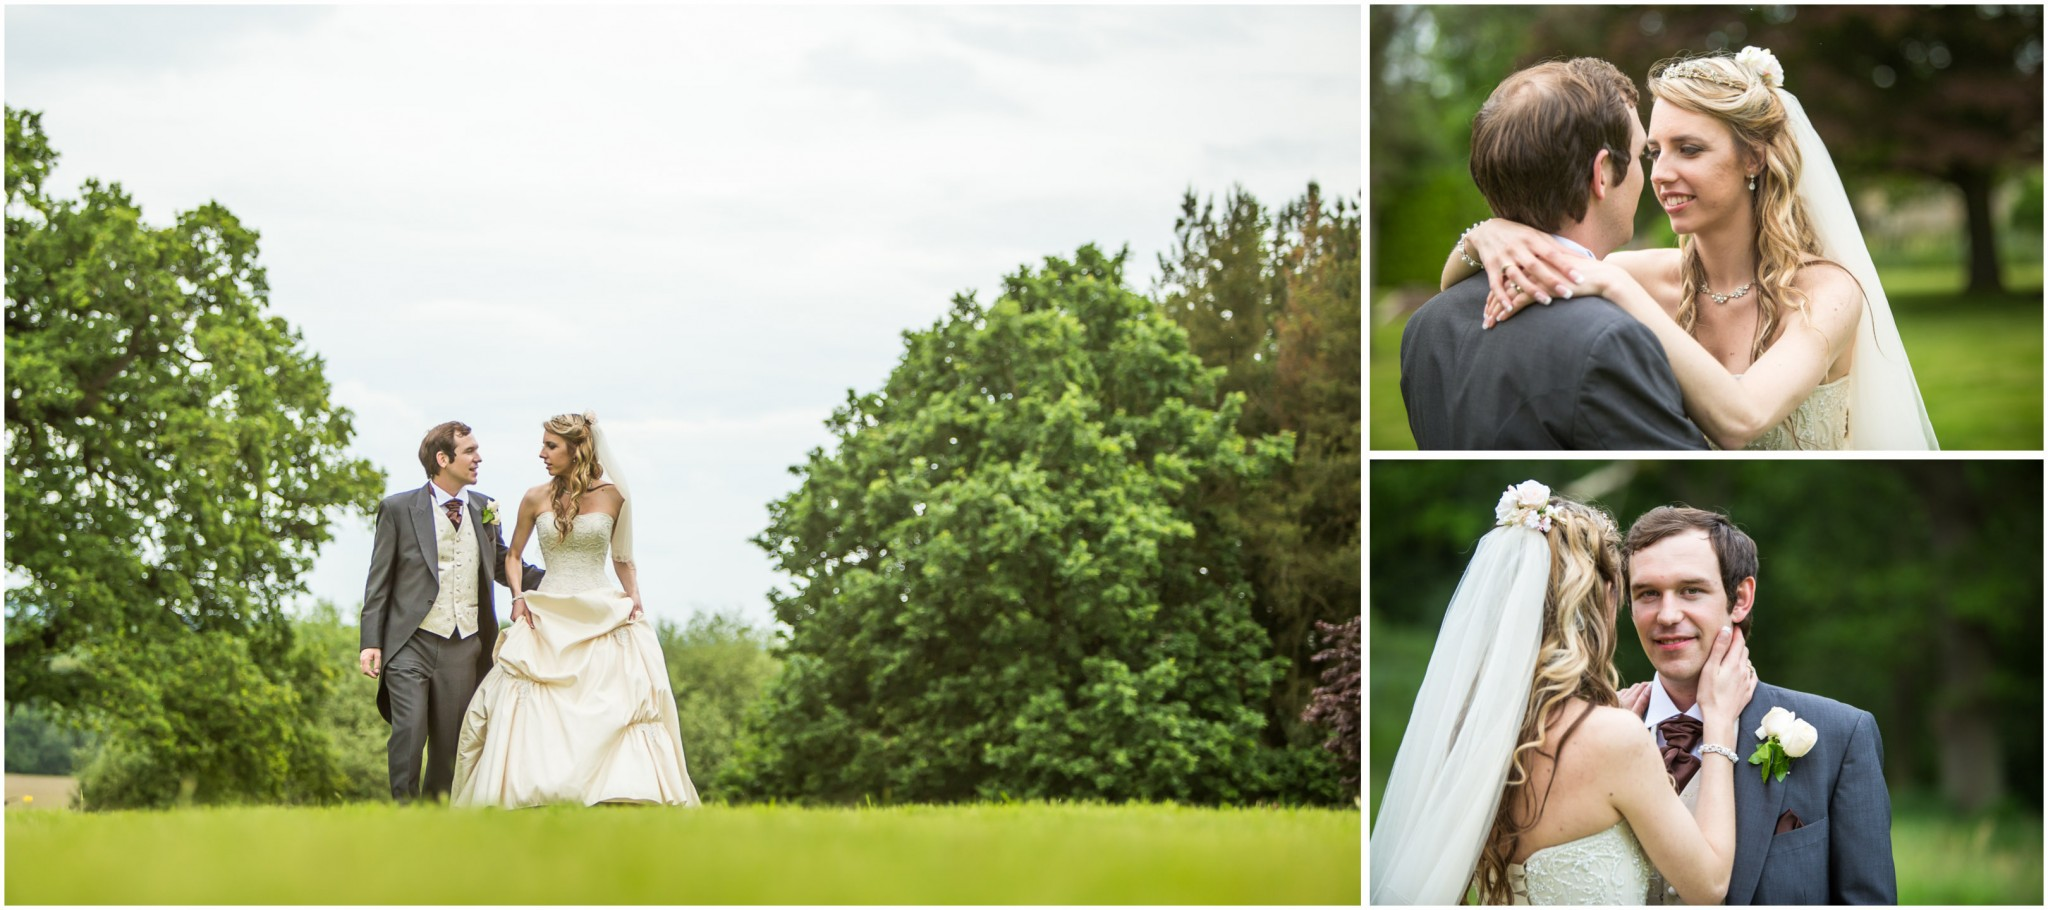 Highfield Park Wedding Photography Portraits of the Bride and Groom